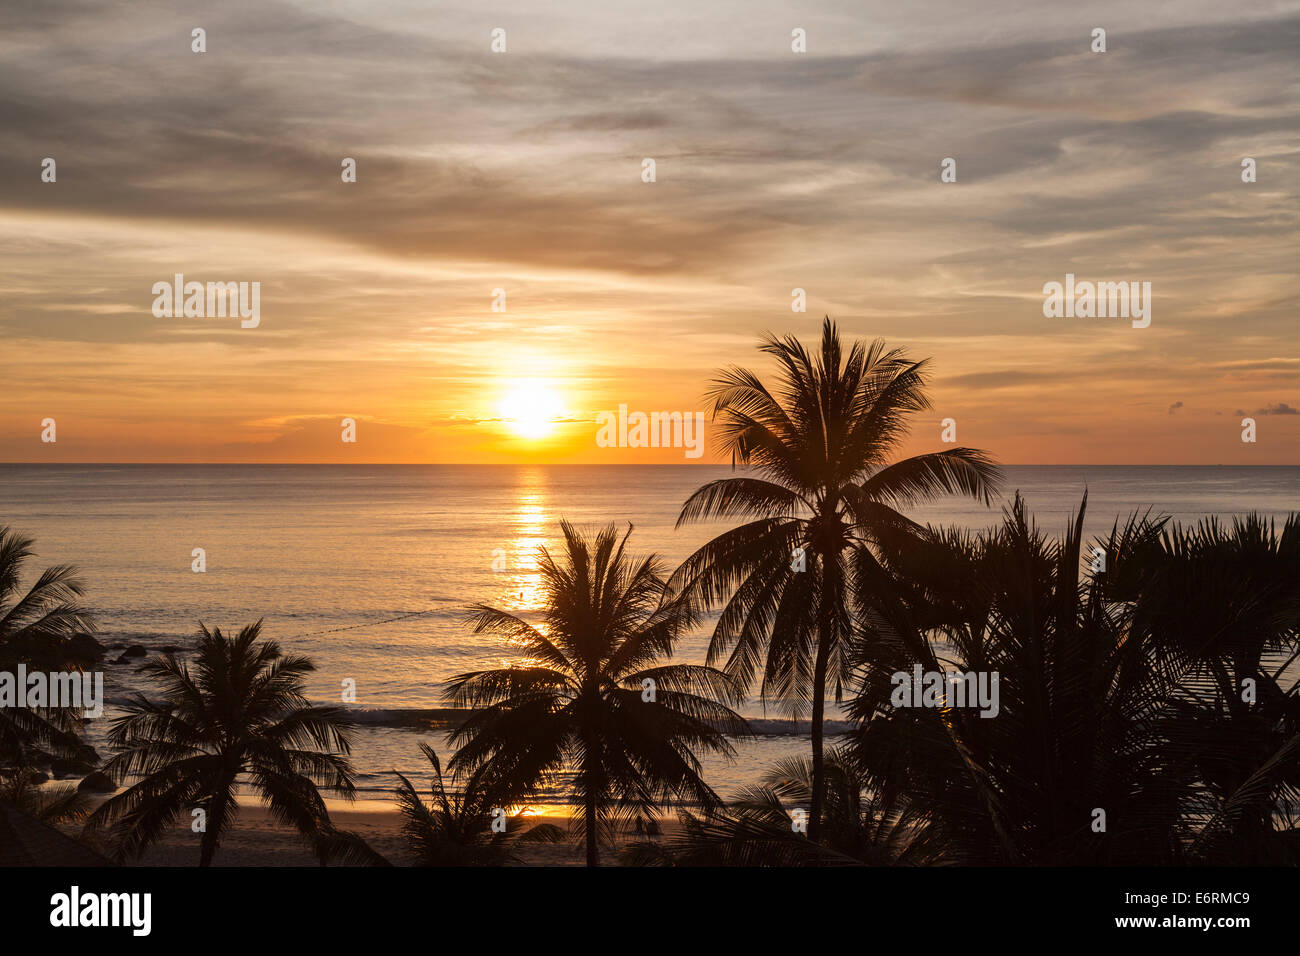 Sunset over the sea, Surin Beach, Phuket, Thailand with silhouettes of palm trees against a colourful orange sky Stock Photo